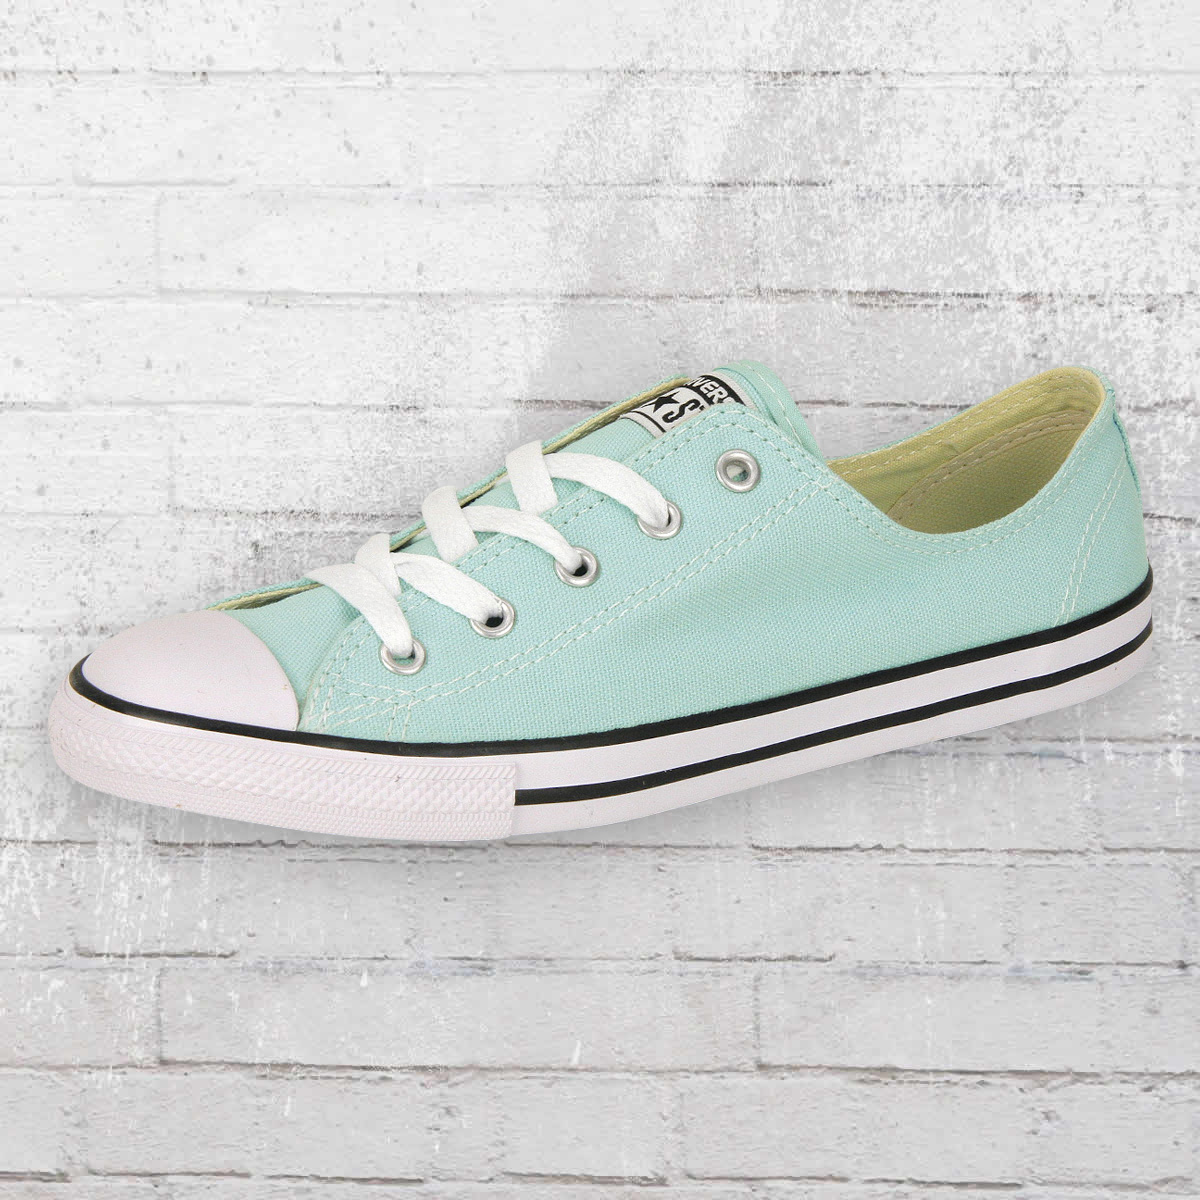 Turquoise Ox Order Low Shoes Ladies Ct NowConverse Chucks Dainty rxedoQWCBE